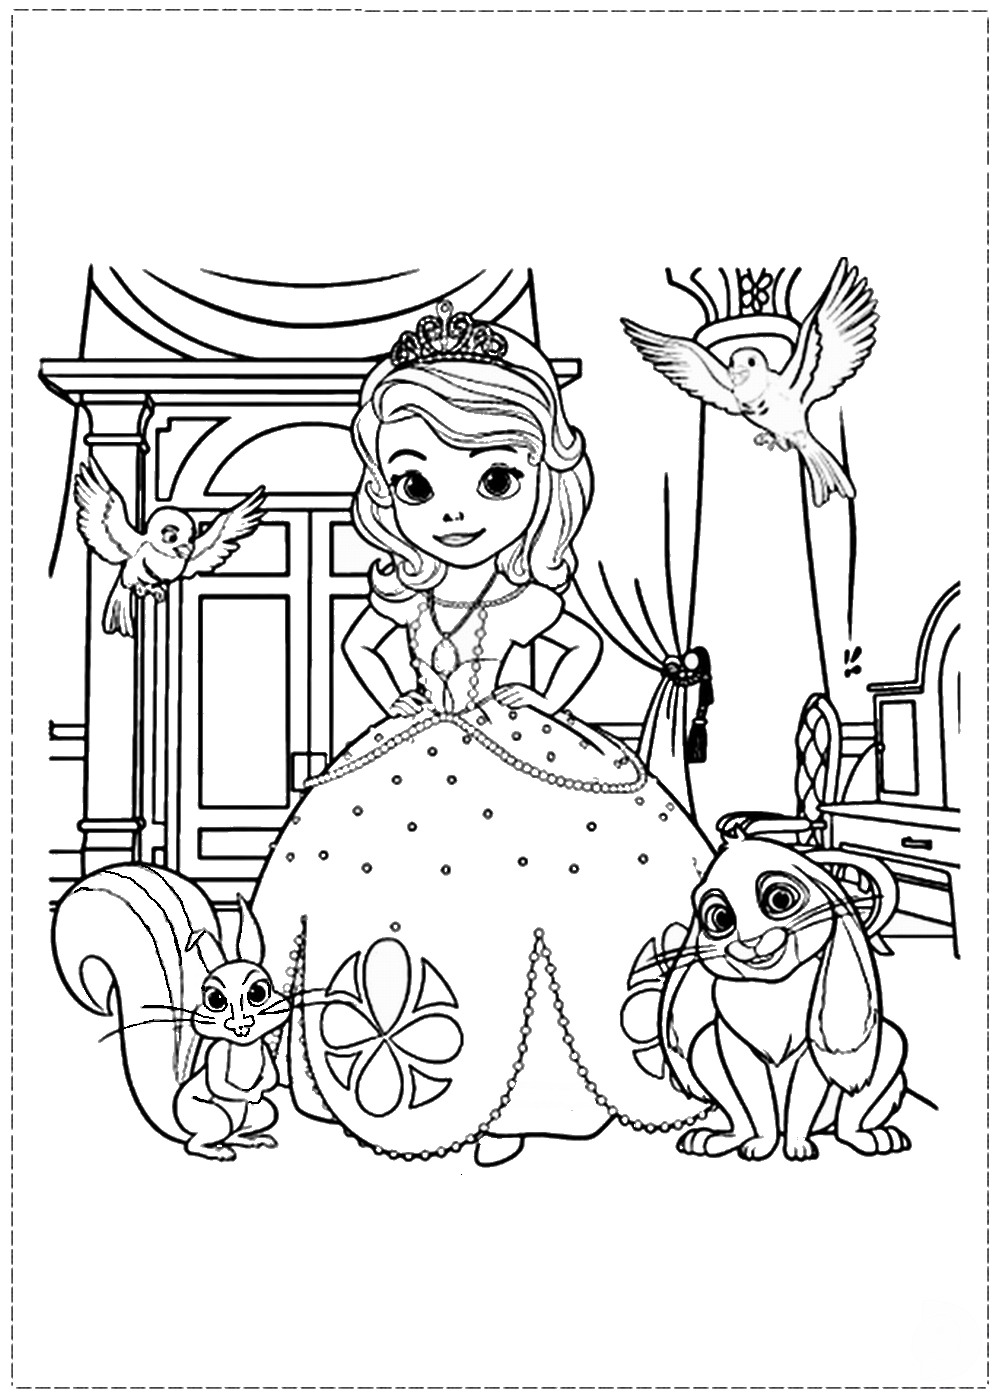 sofia the first free coloring pages sofia the first coloring pages the sun flower pages free sofia pages coloring the first